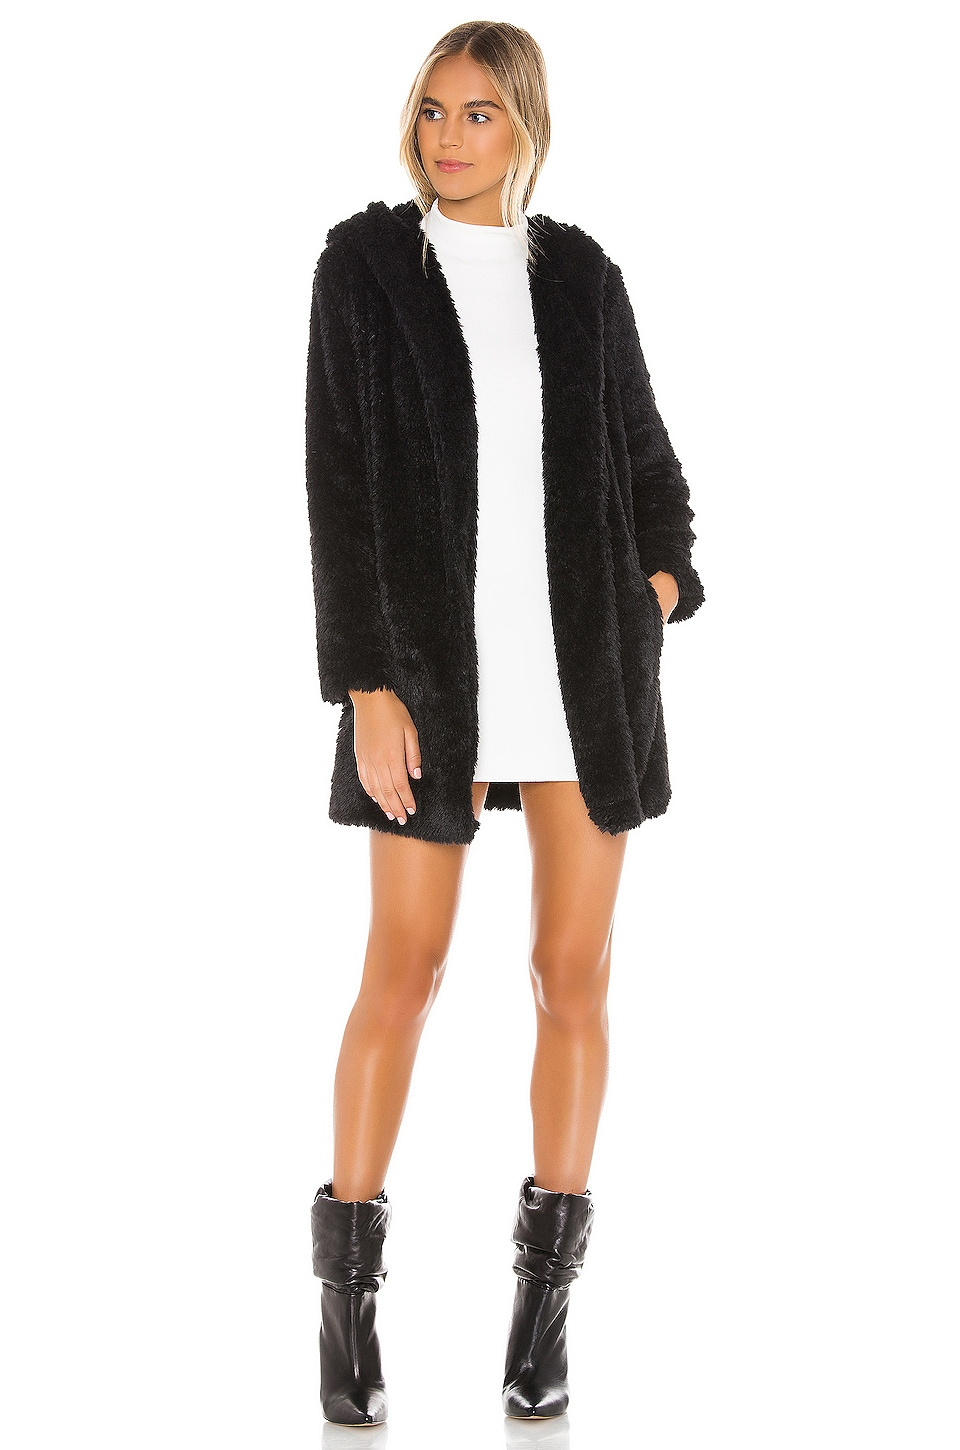 BB Dakota JACK by BB Dakota Its Shawl Good Faux Fur Jacket in Black